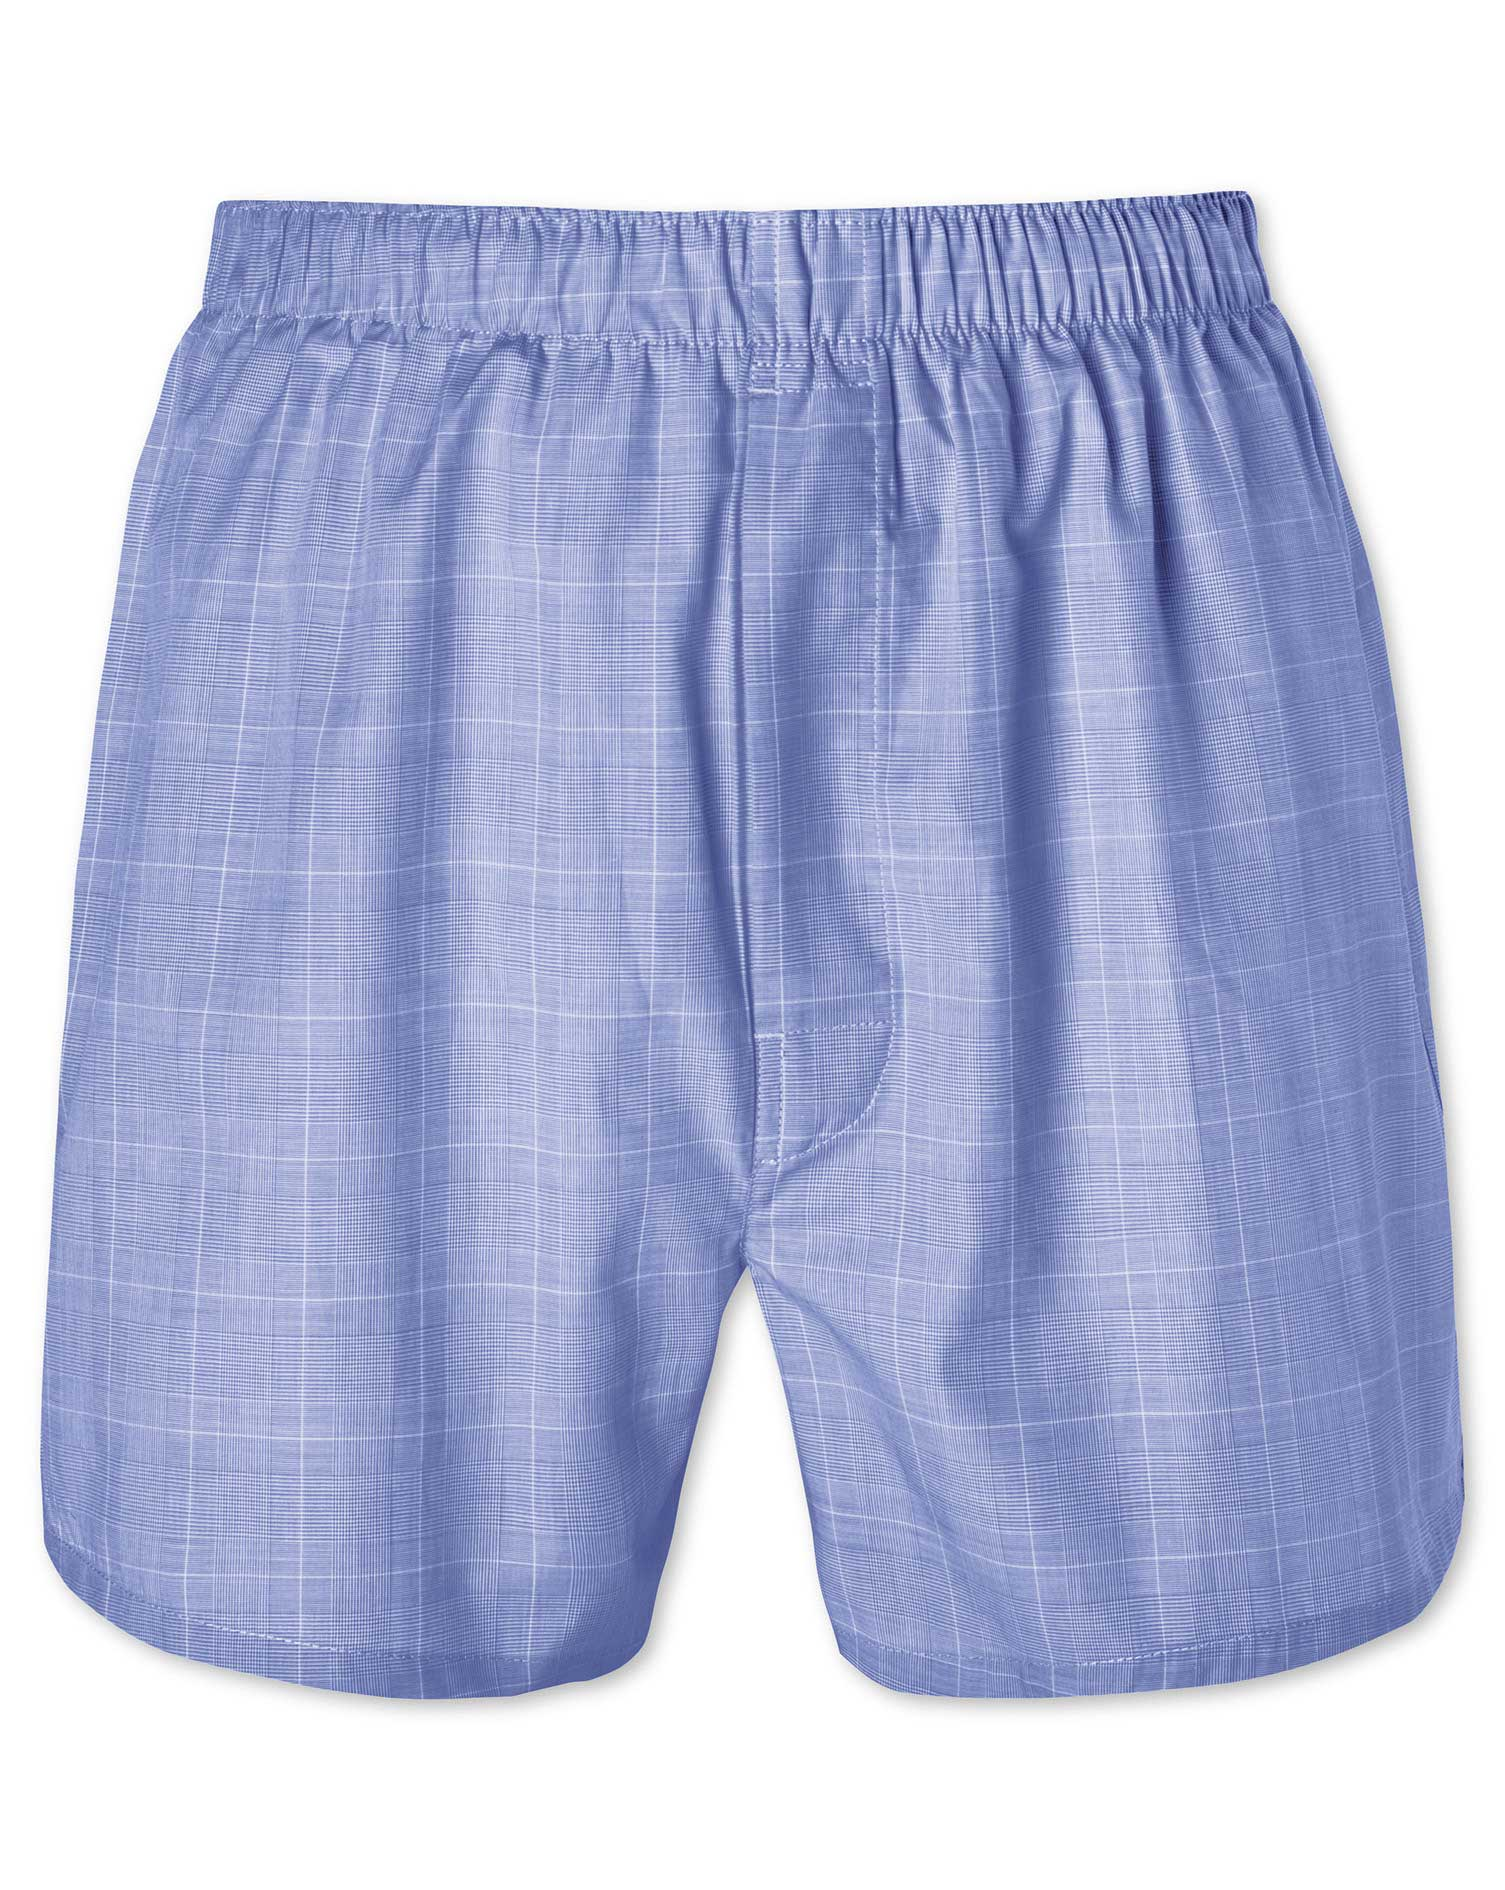 Blue Prince Of Wales Woven Boxers Size XXL by Charles Tyrwhitt